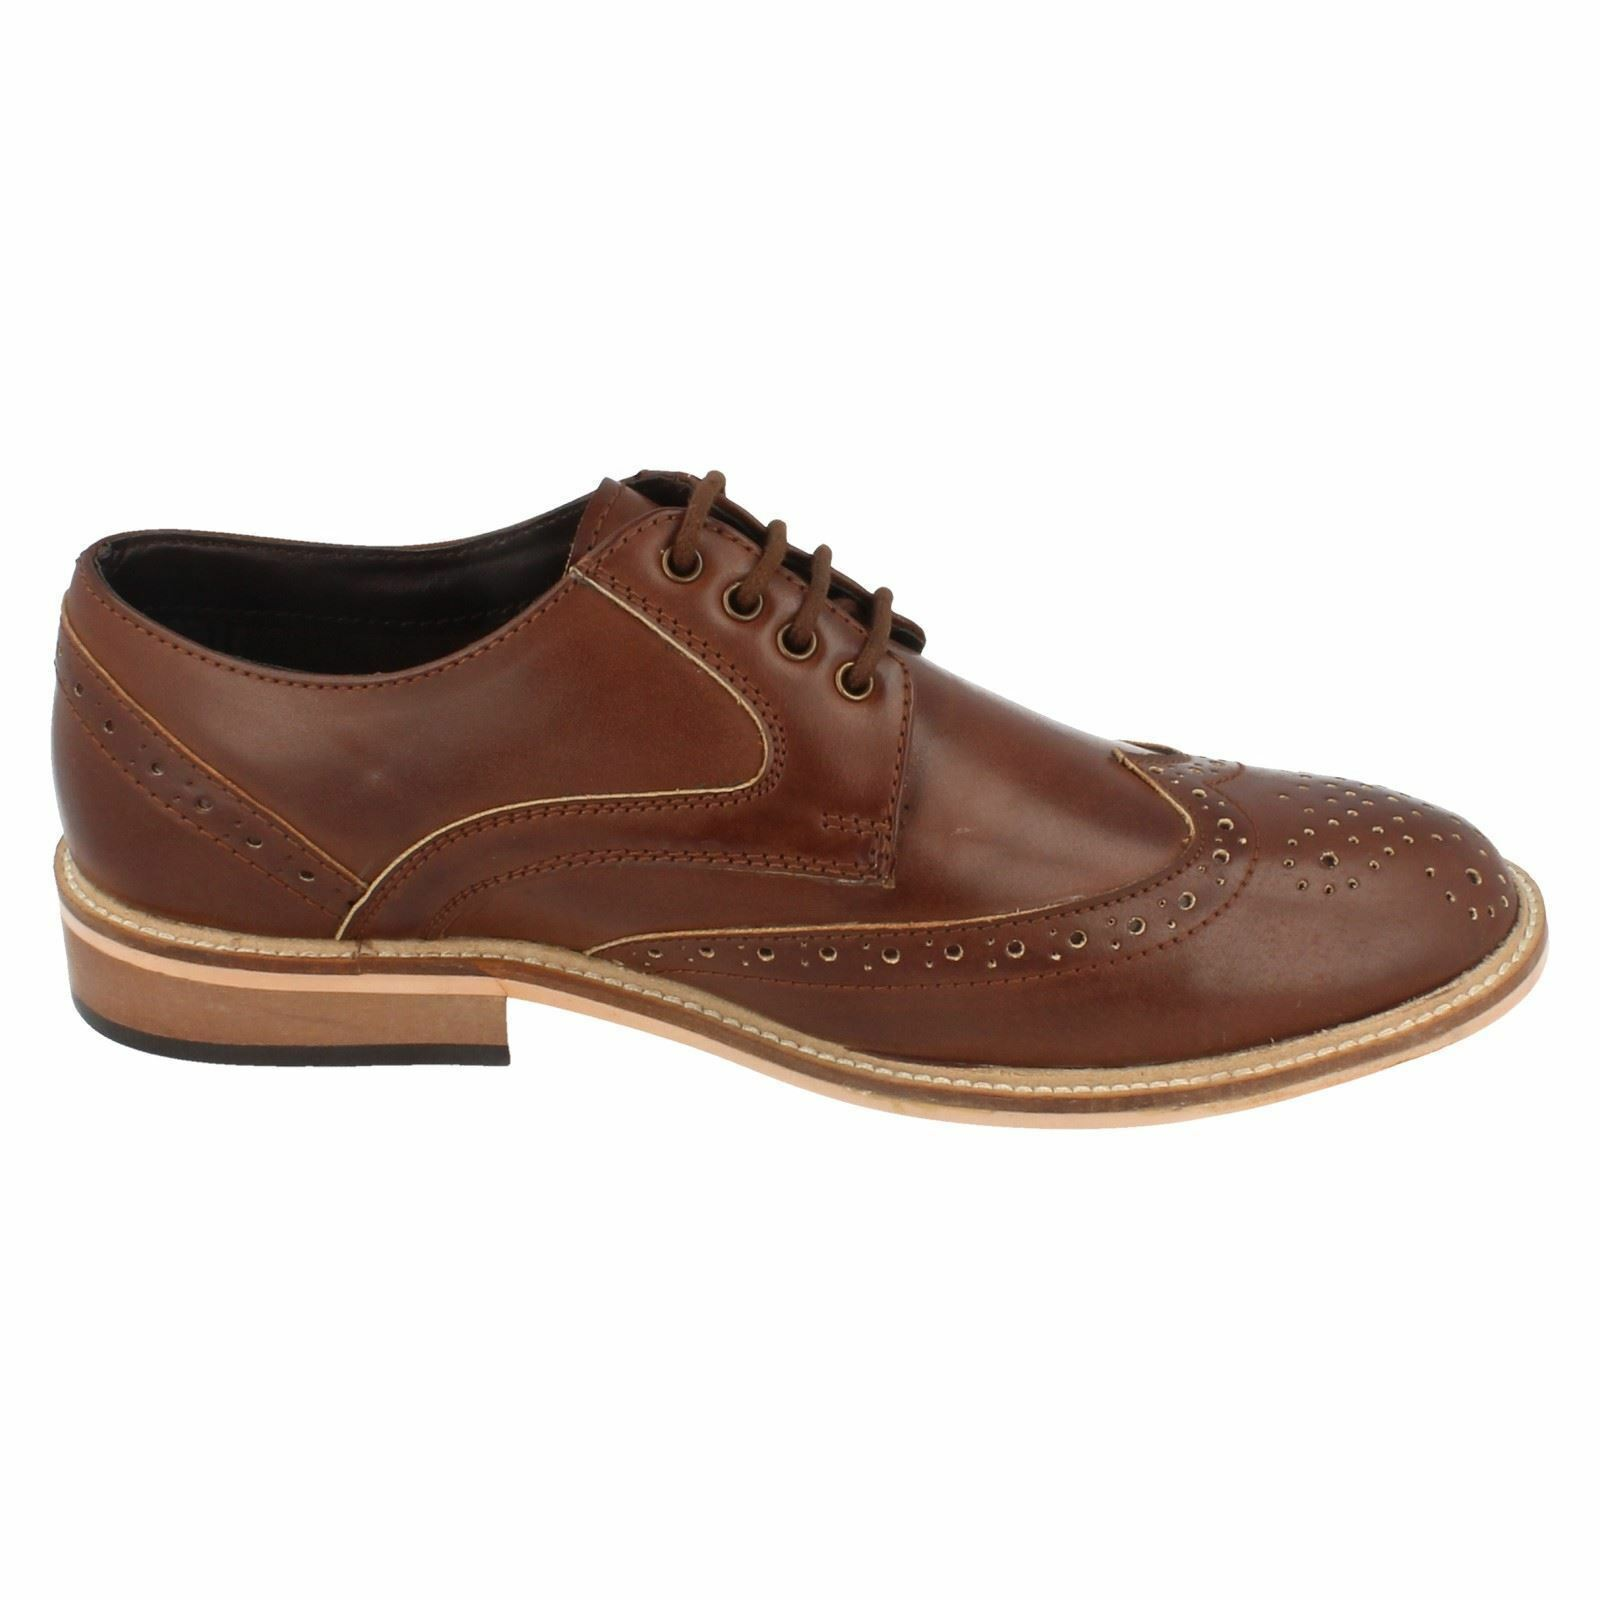 Herren 21004 Up Brogue Lace Up 21004 Schuhes By Lambretta Retail Price 484ea9